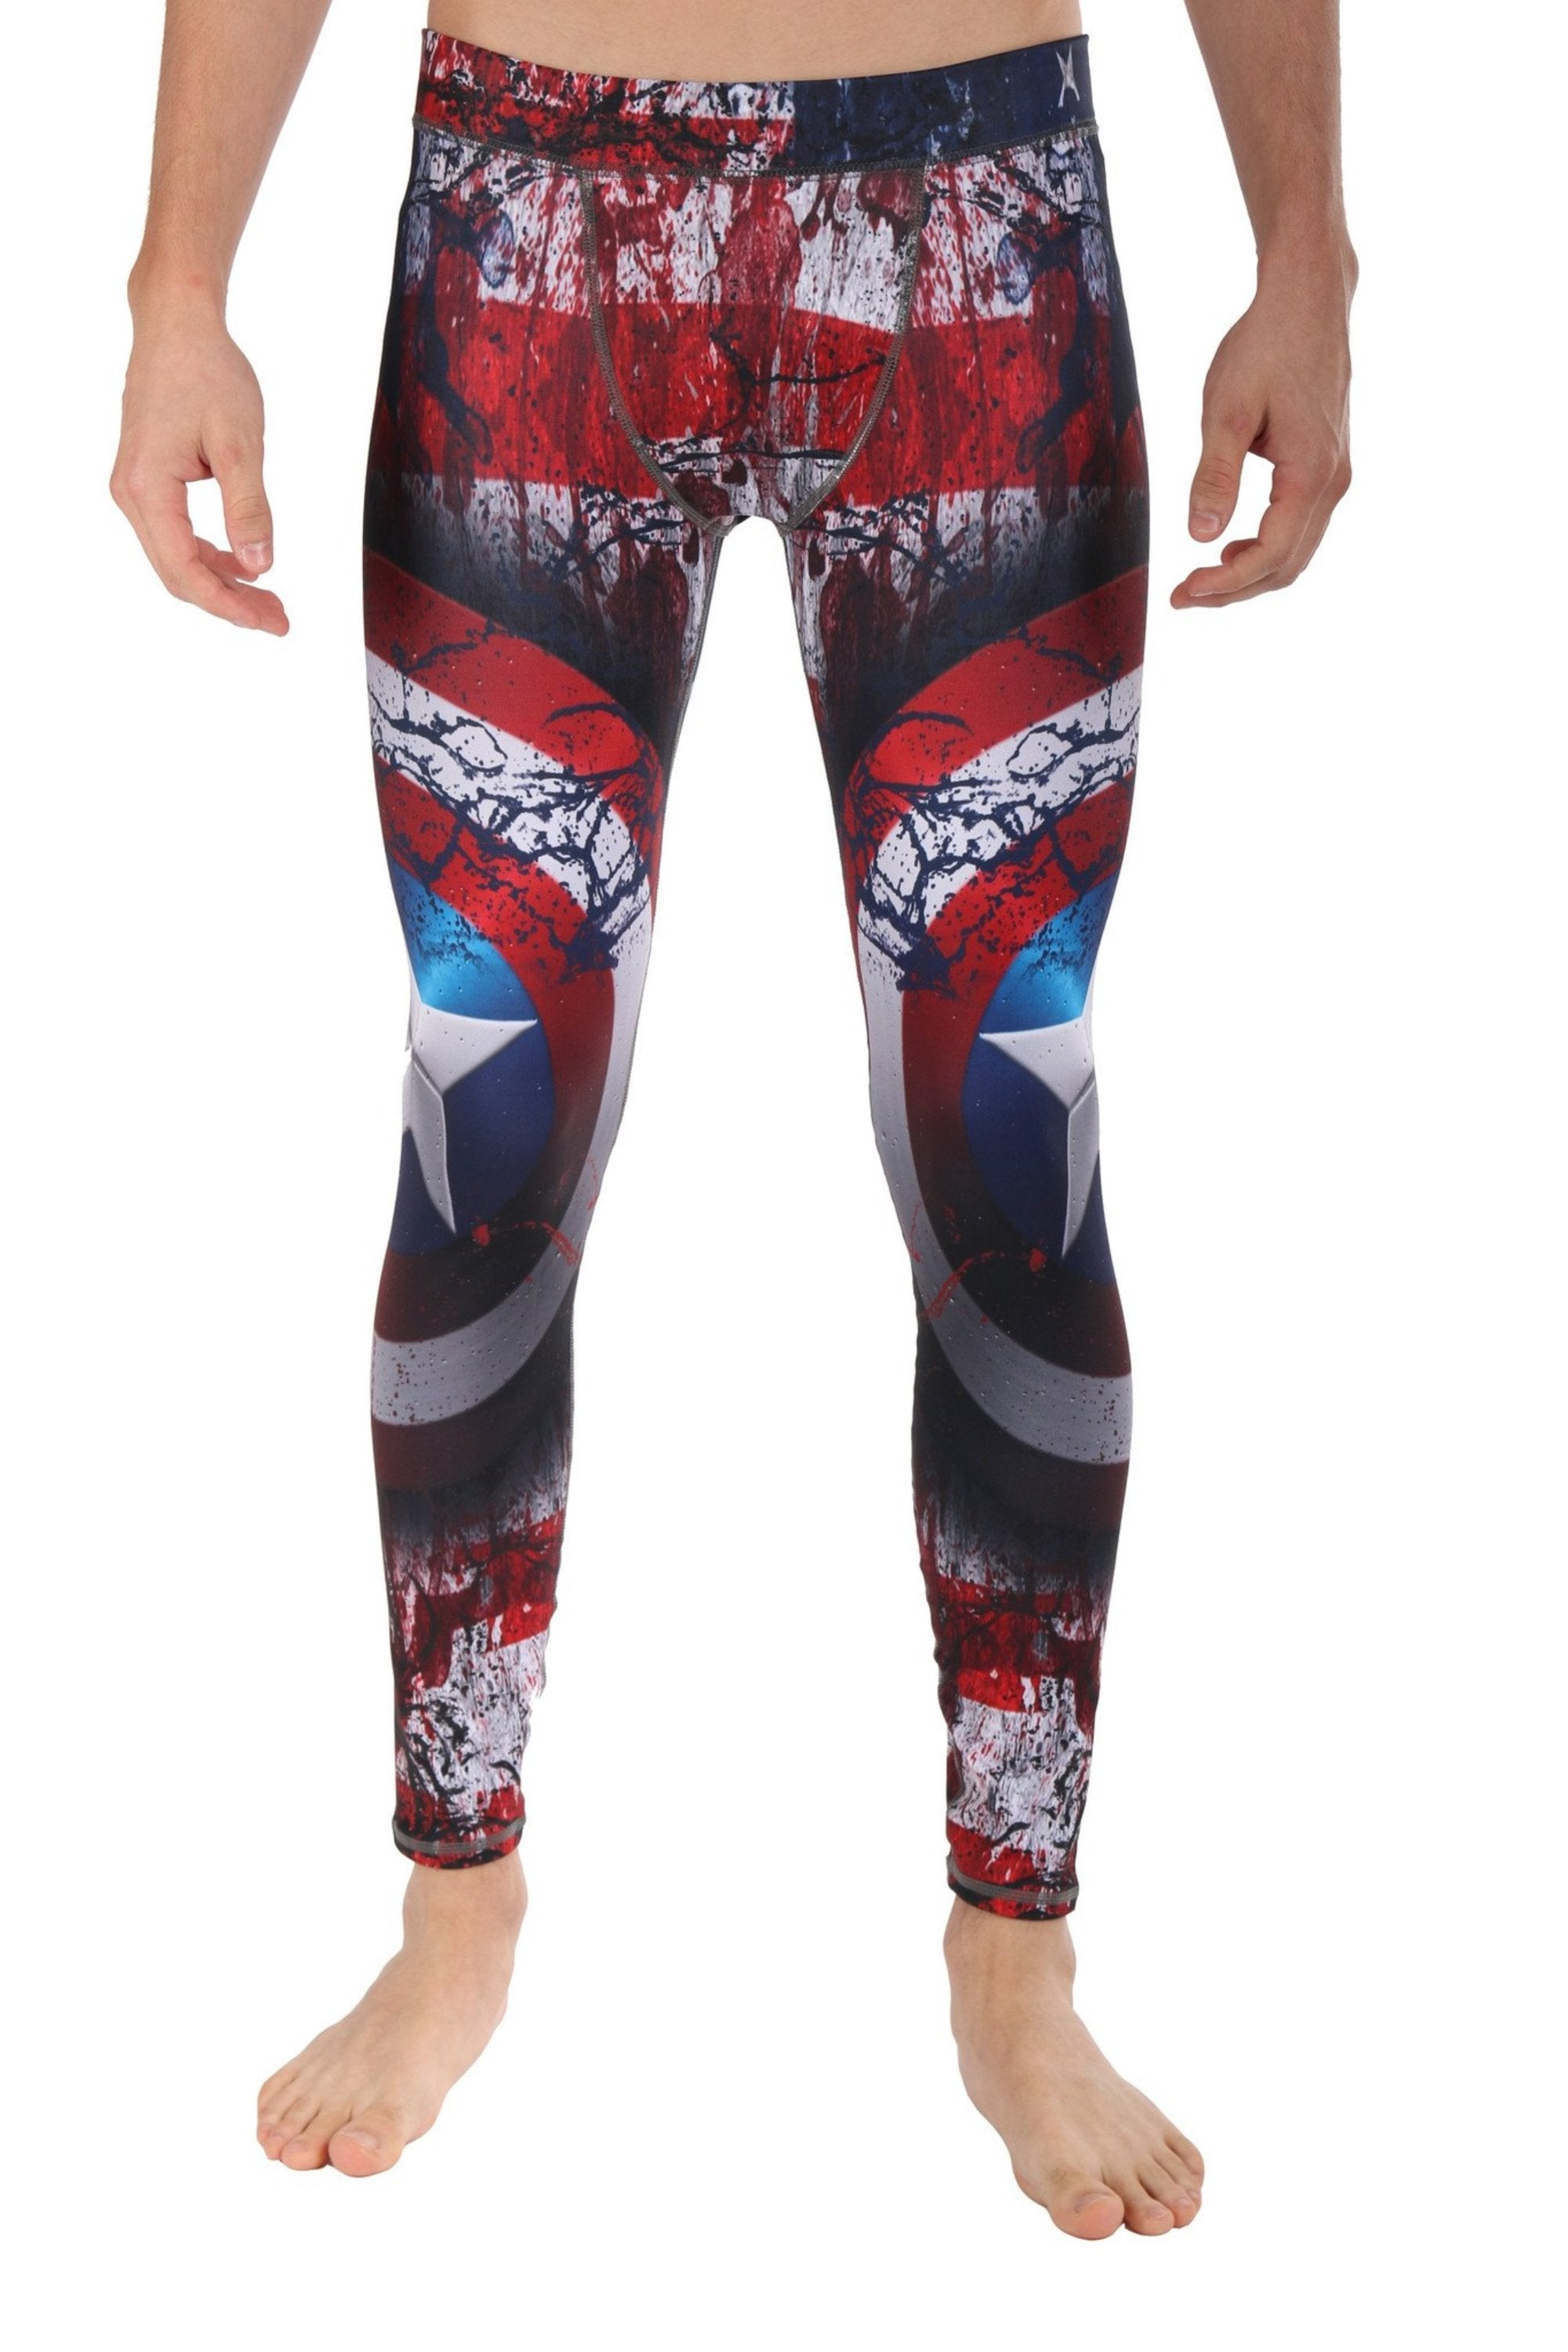 Super Hero Yoga Pants- Captain America Men's Legging. Find this beast pattern in the Patriotic Me LavaLoka Collection.